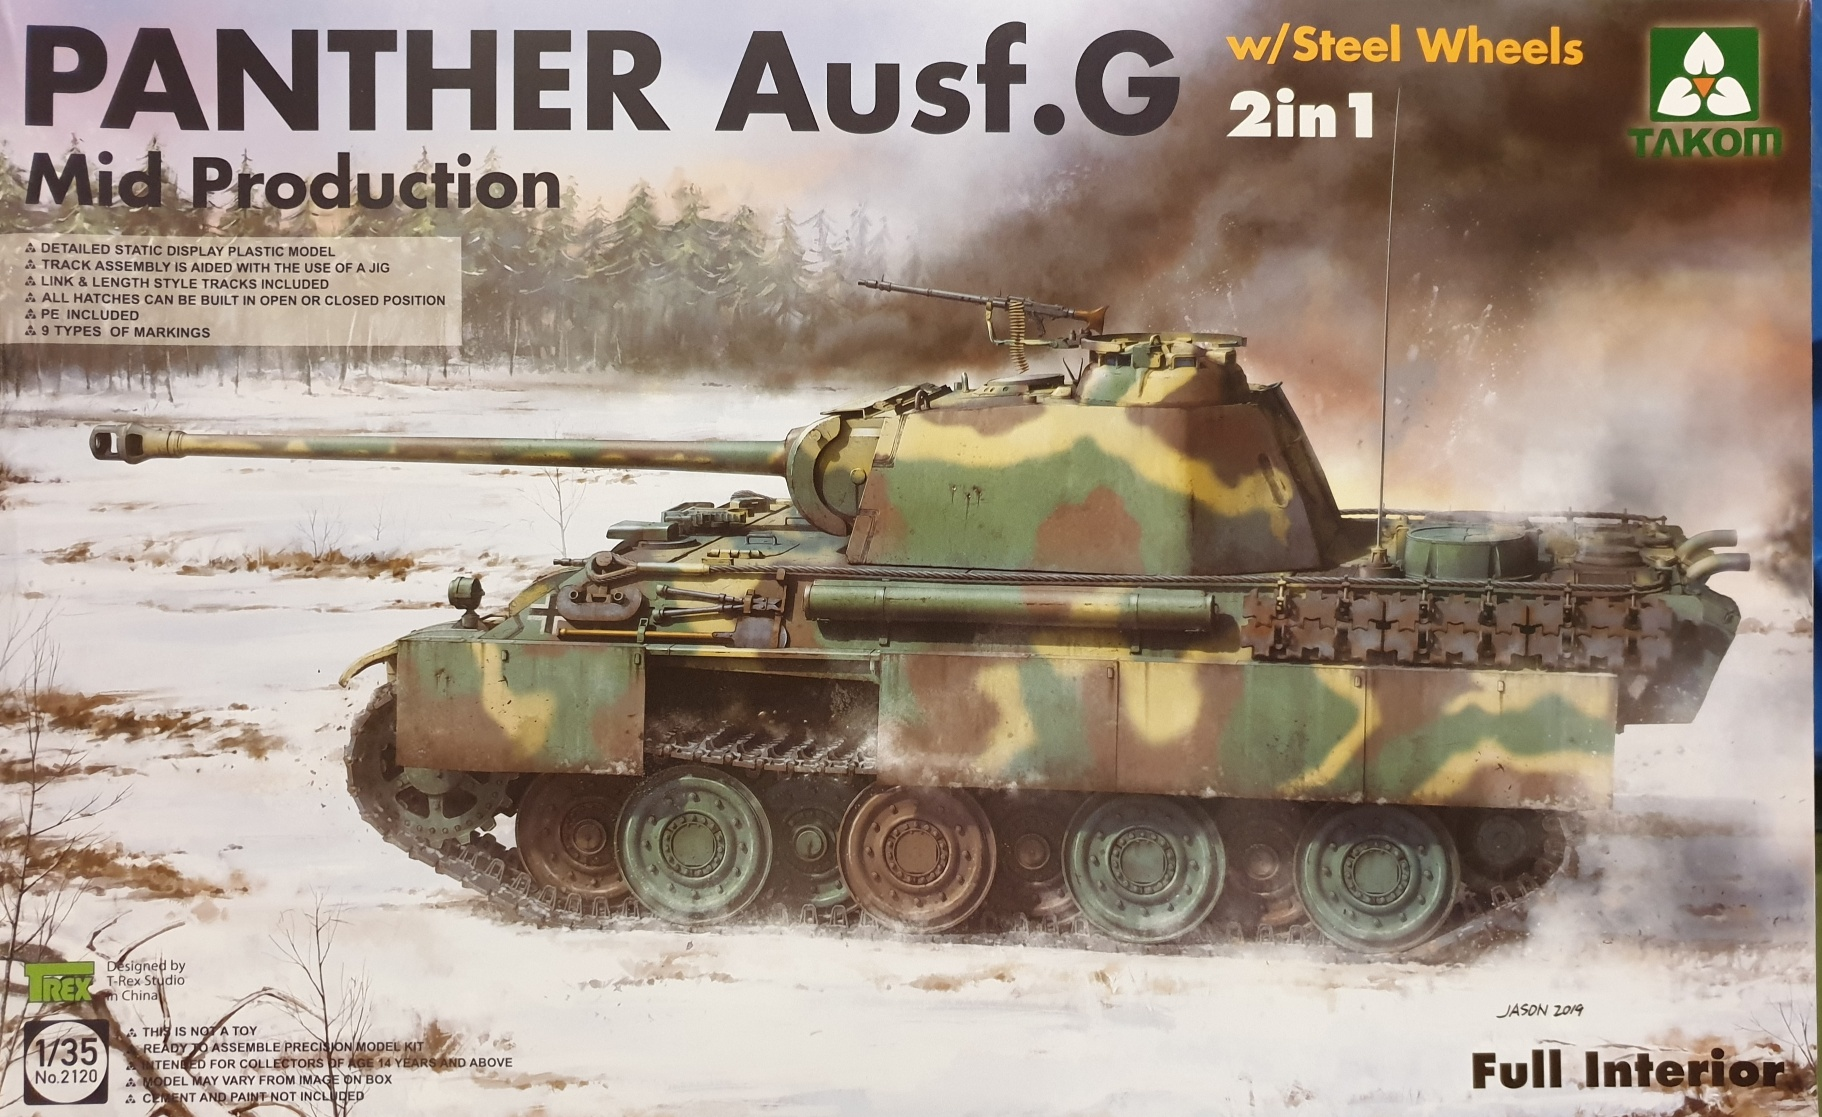 03 Takom 2120 Panther Ausf.G Mid Production w/Steel Wheels 2 in 1